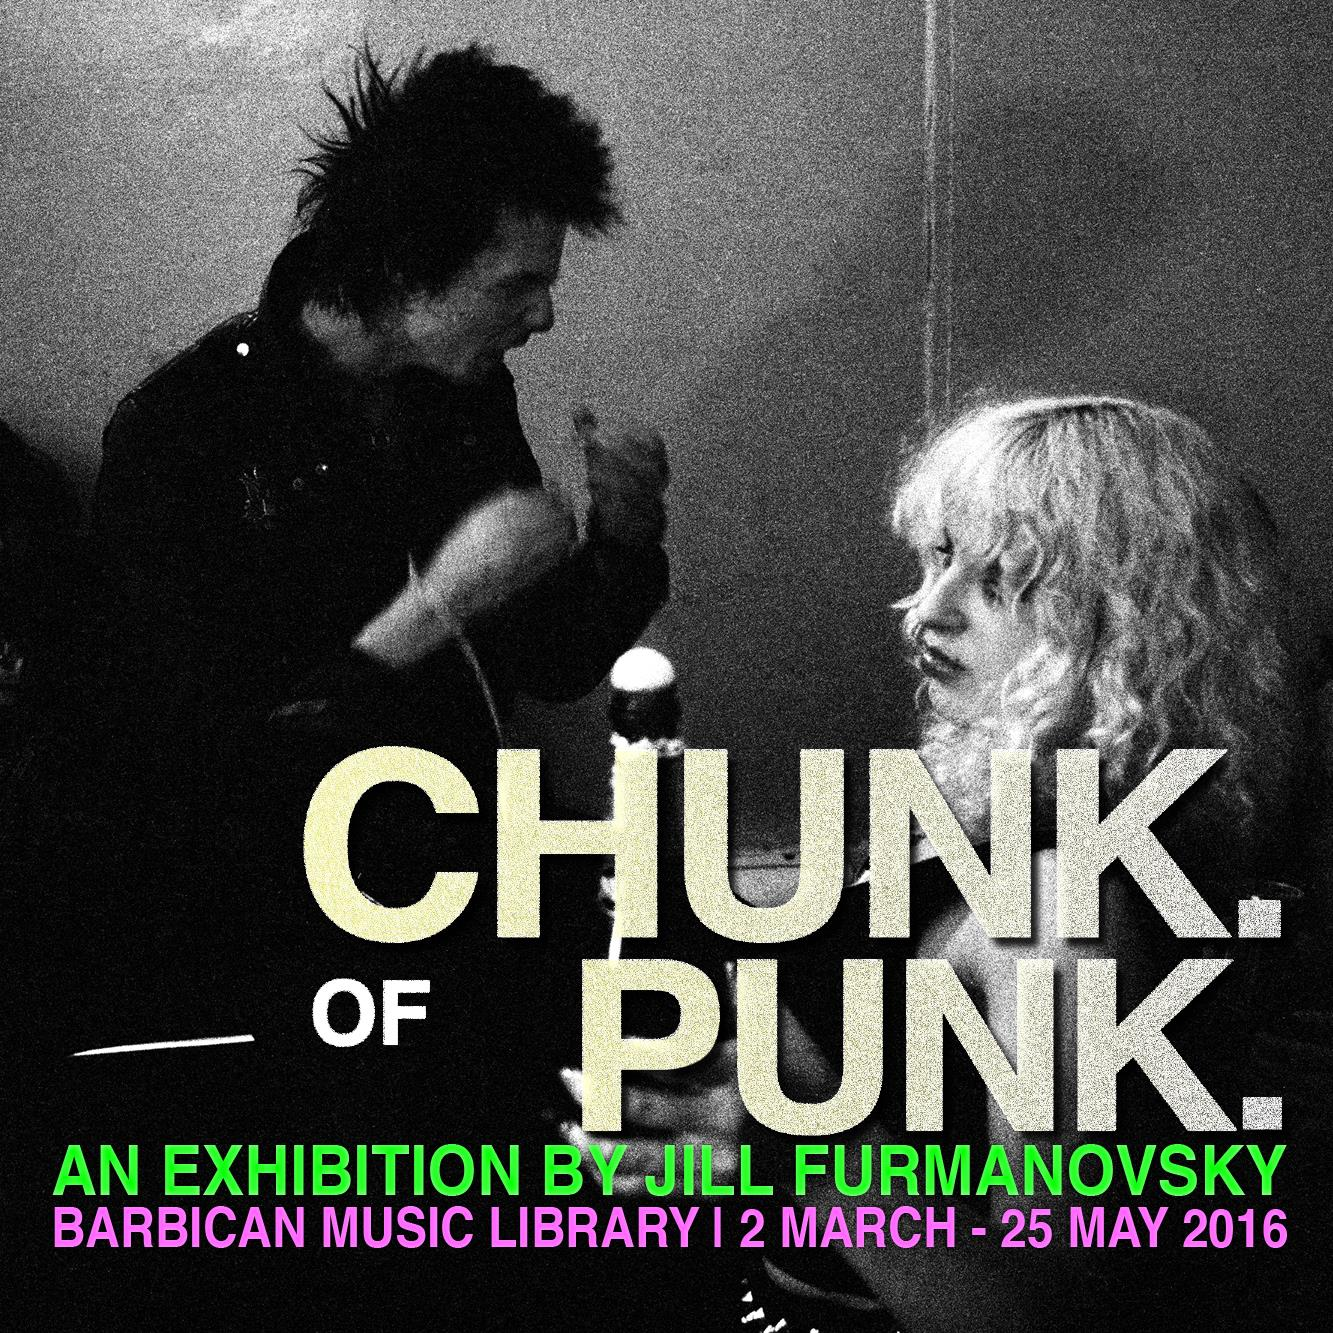 Chunk of Punk Exhibition: Barbican Music Library